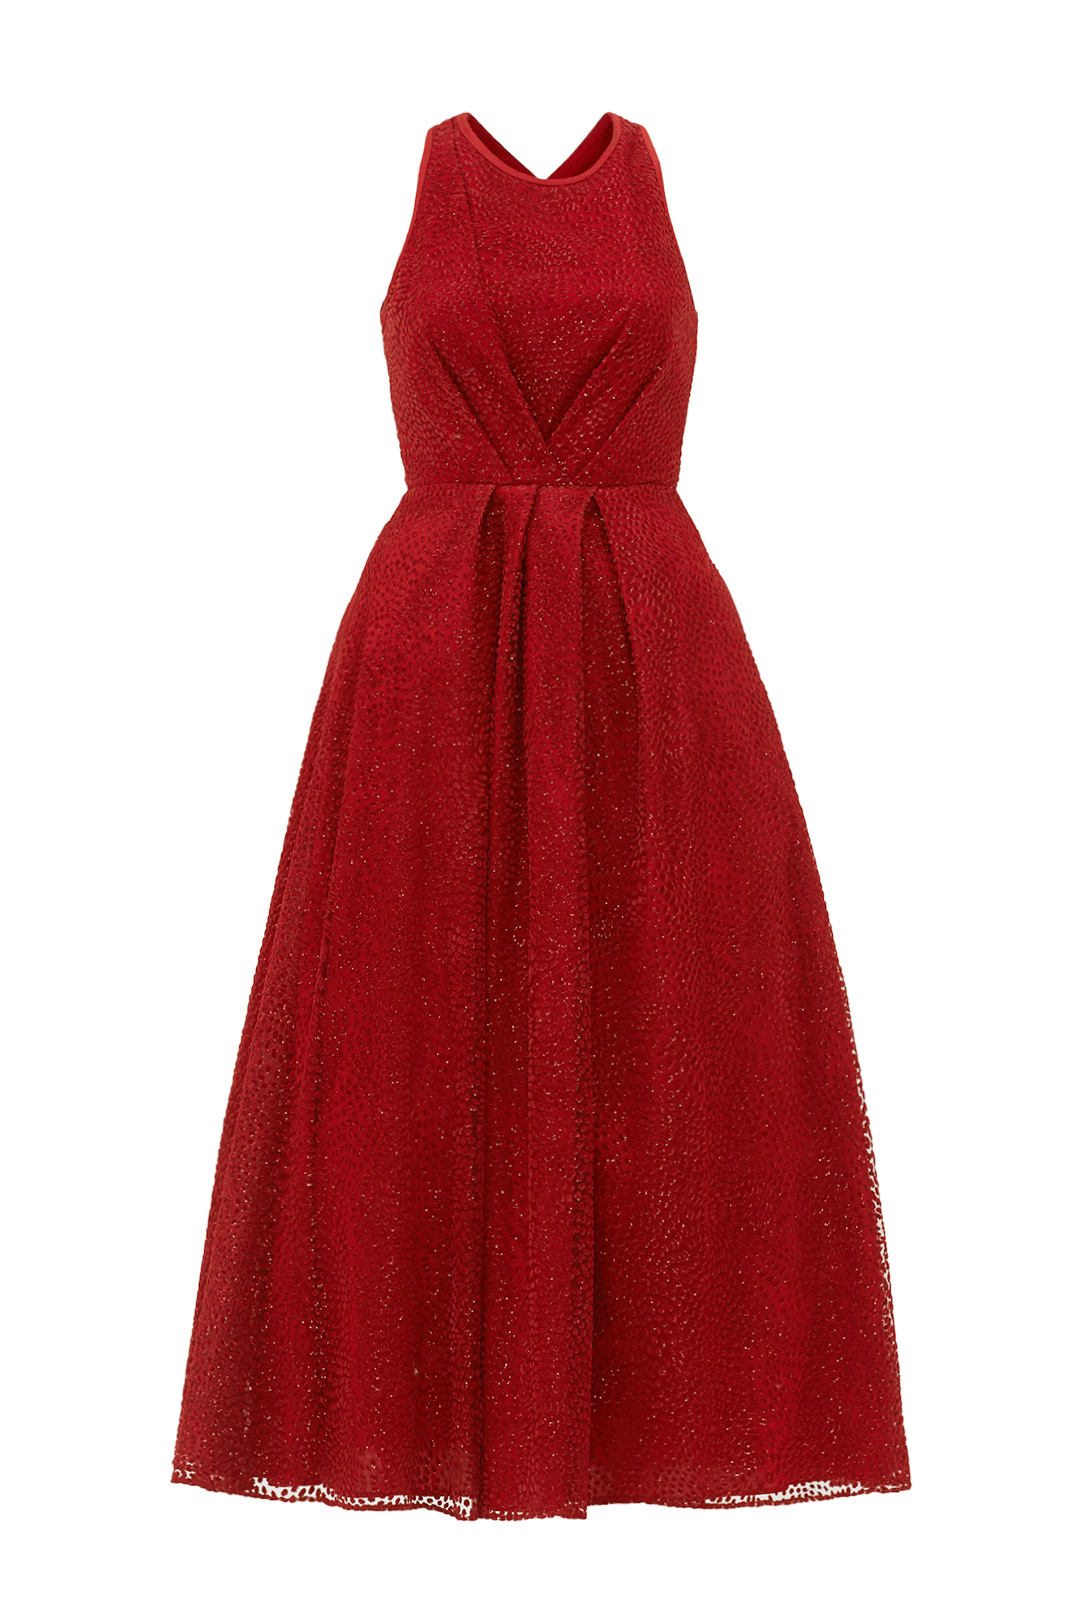 ML Monique Lhuillier Red Women\'s Size 8 Shimmer Crossover Gown $698 ...